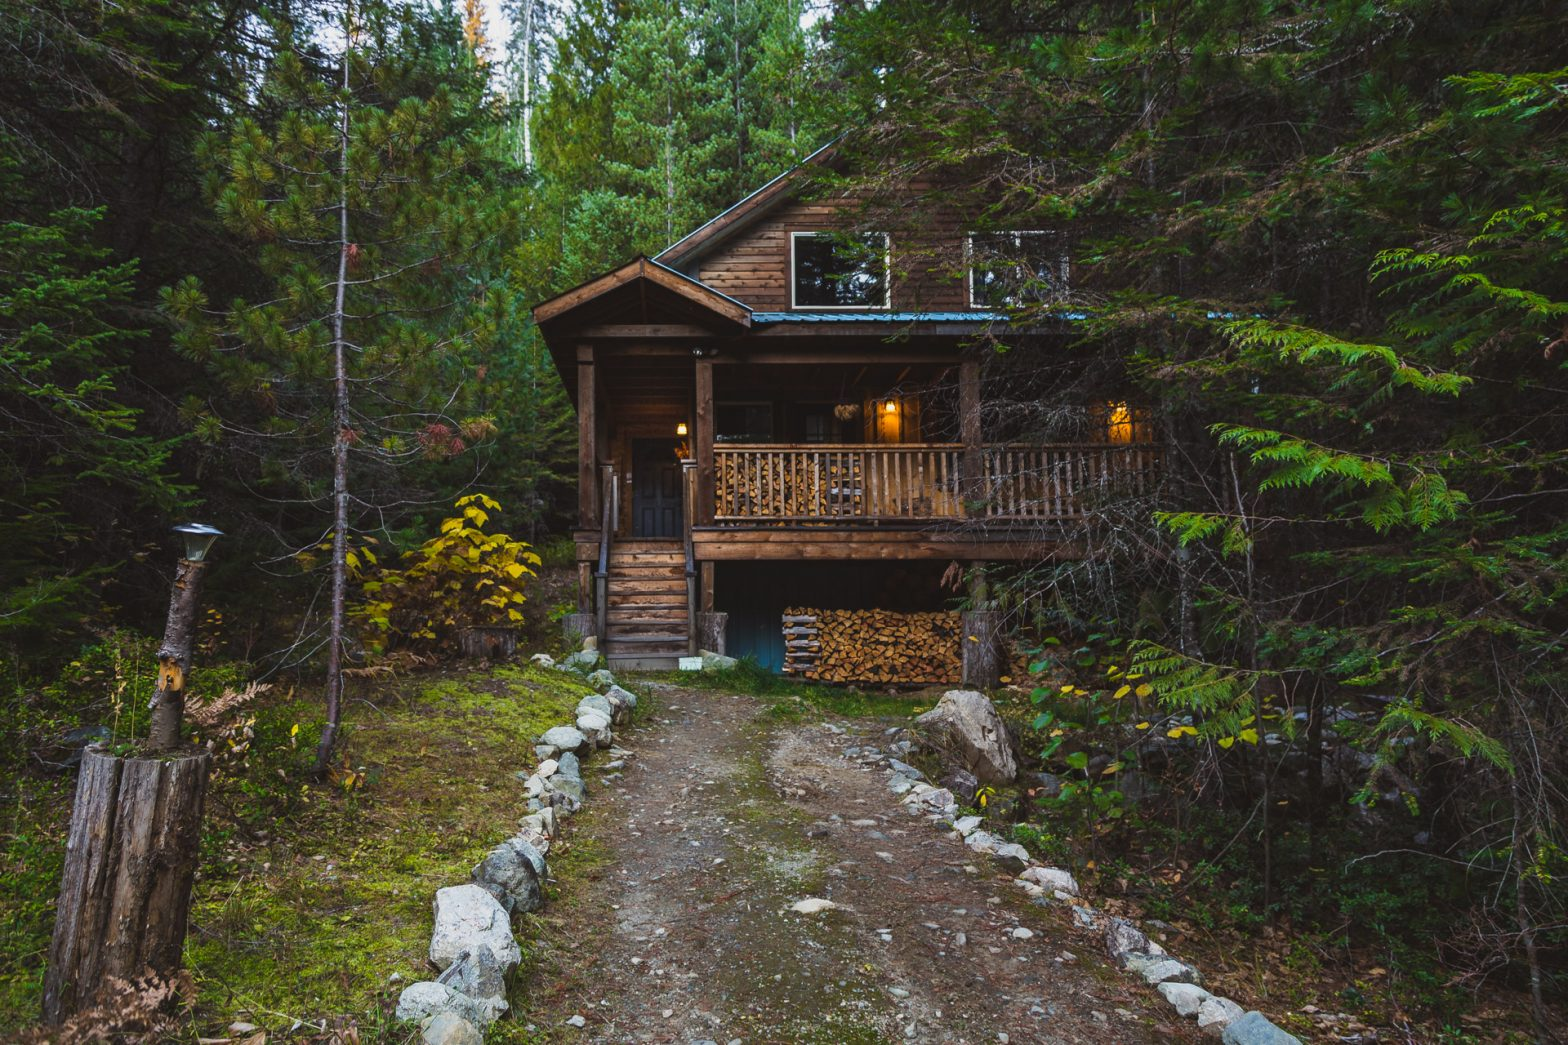 11 cabins in the woods to live a horror movie … or a romantic